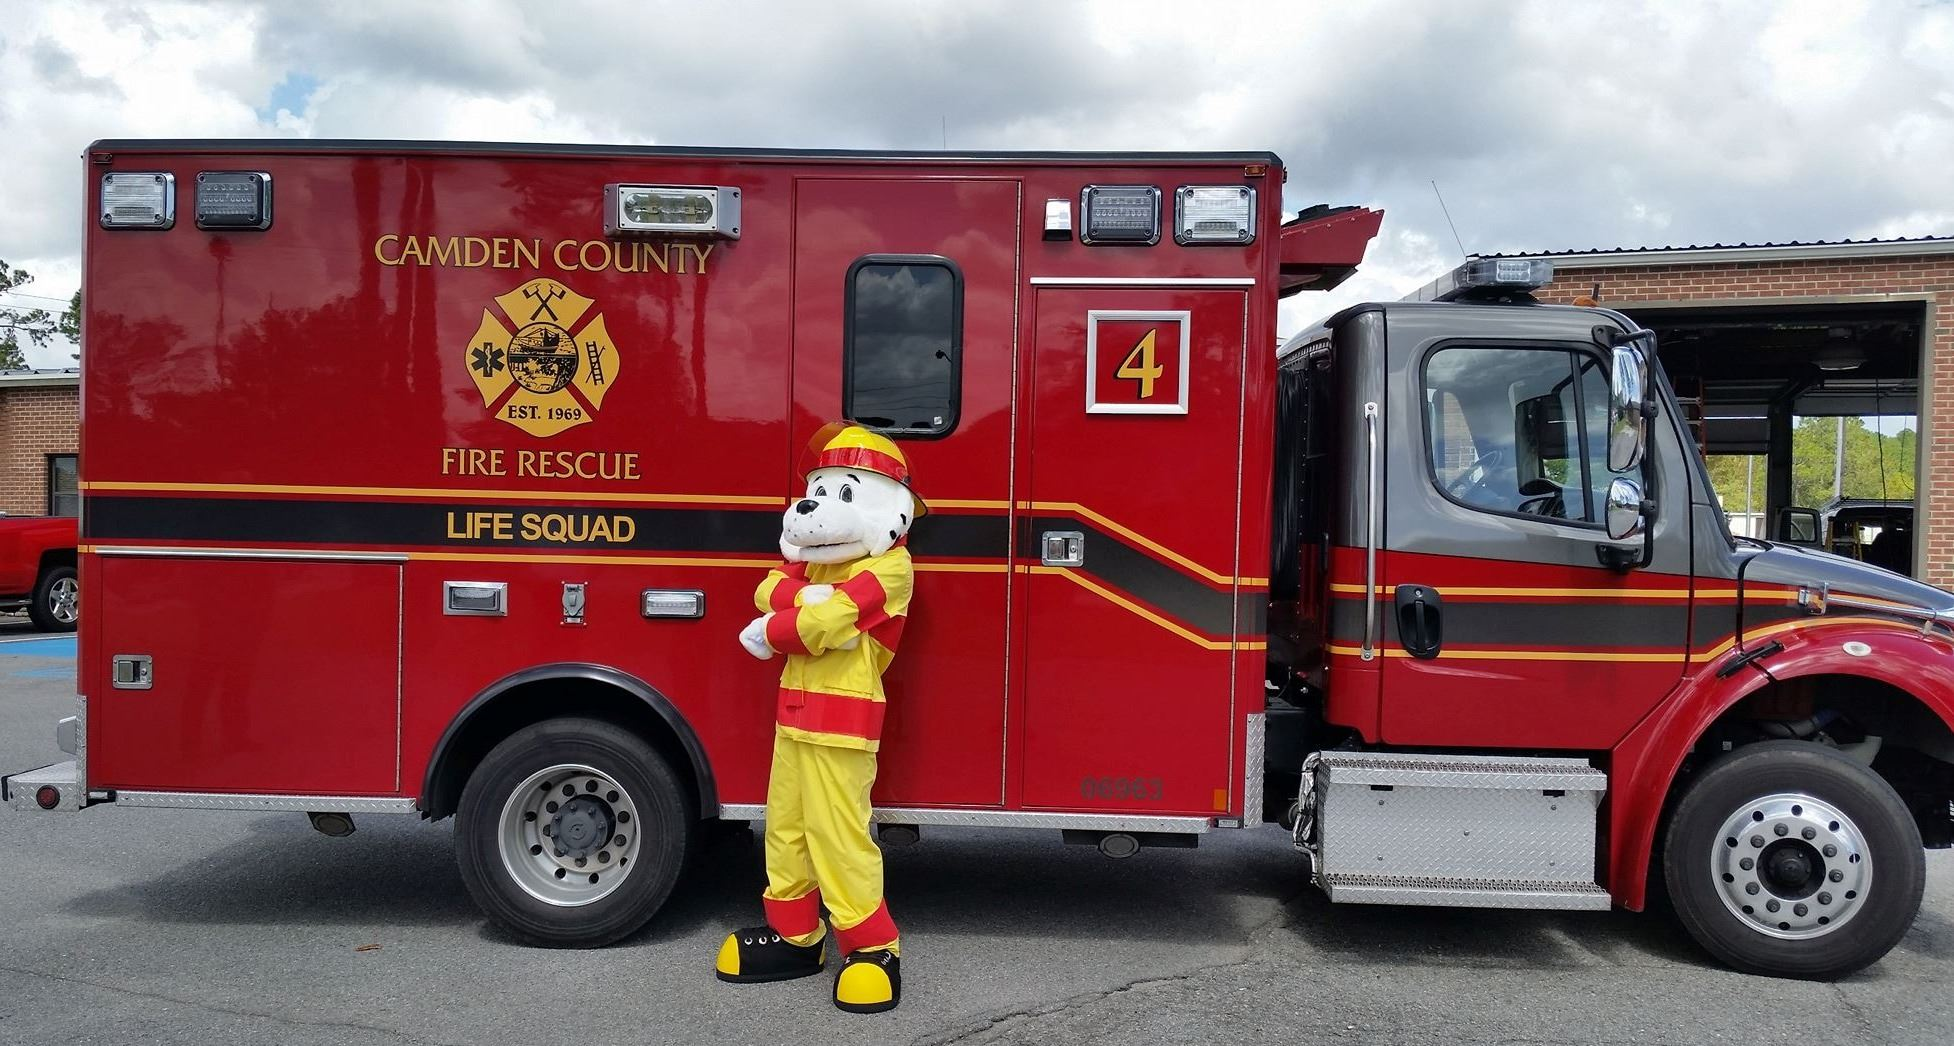 Sparky the Fire Dog standing in front of an ambulance